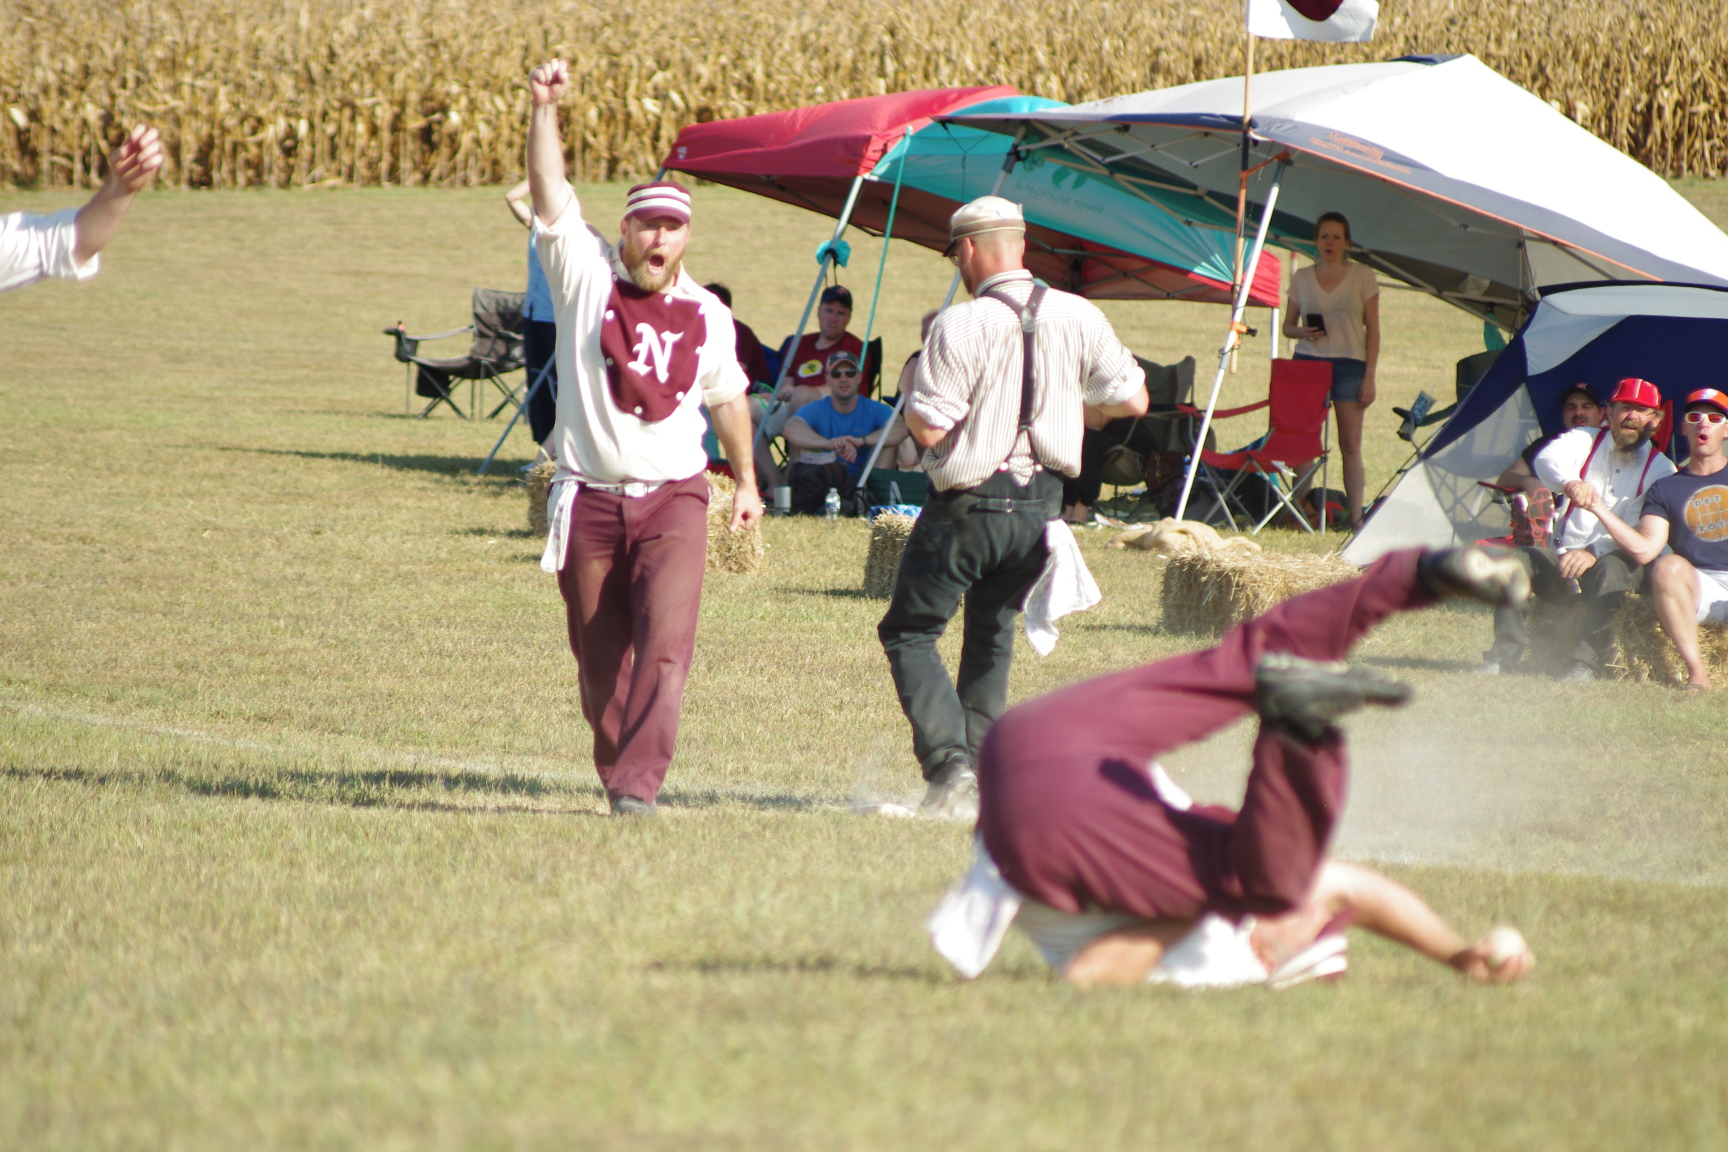 PHOTOS: Nashville Maroons defeat Franklin Farriers to claim Vintage Baseball Sulphur Dell Cup